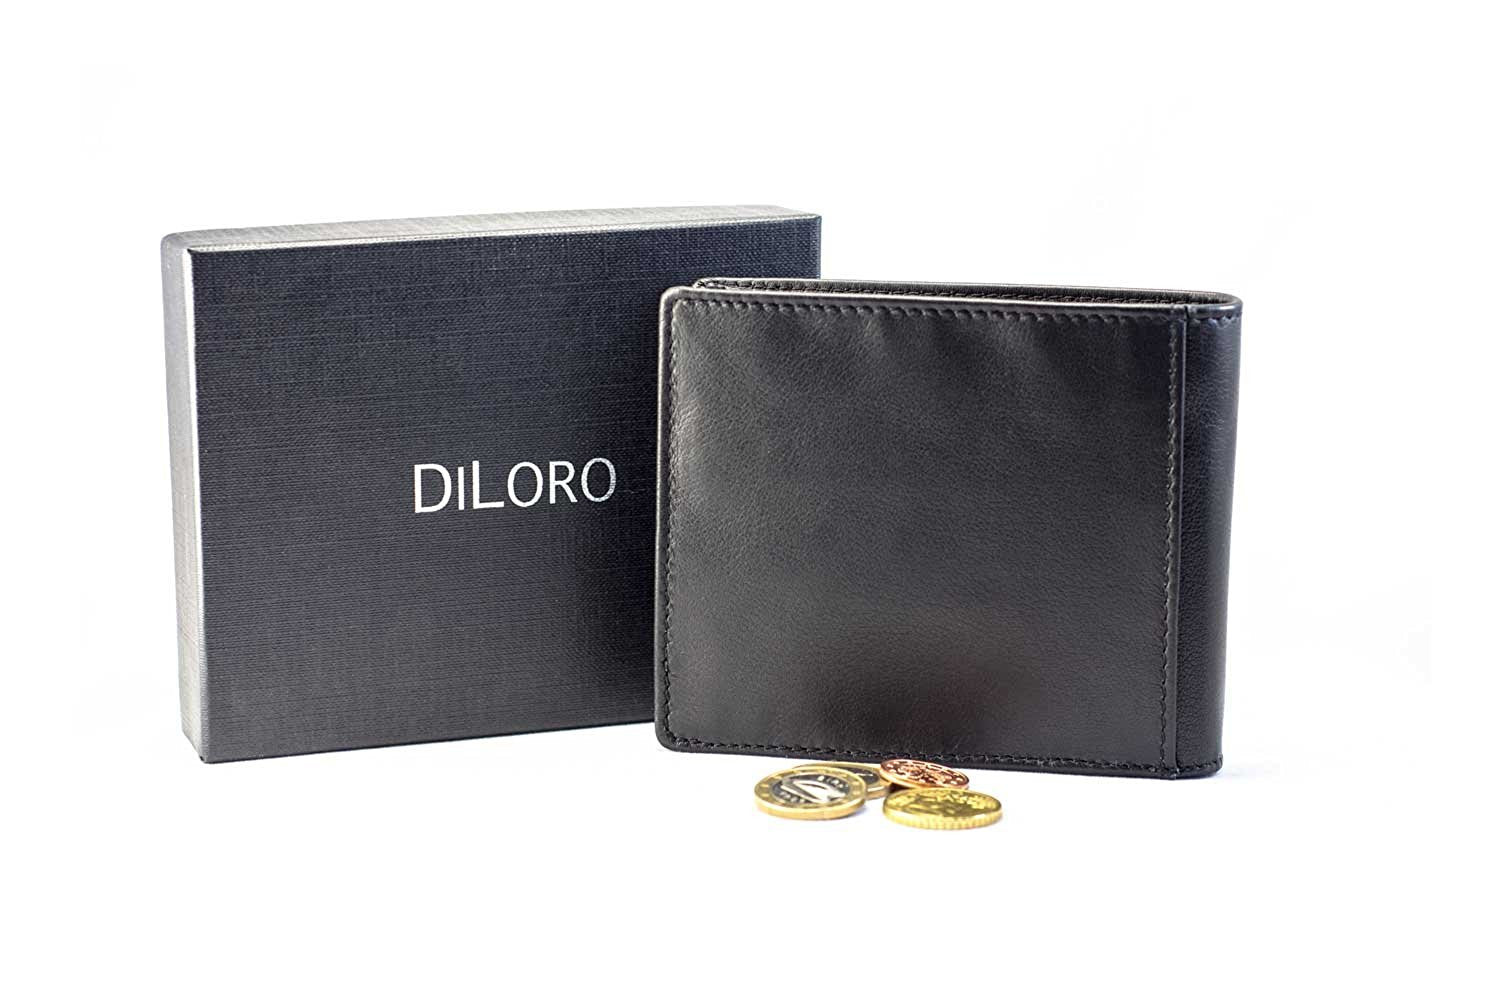 DiLoro Leather Bifold Wallet with Back Slip Pocket, Coin Section and RFID Protection - with DiLoro Gift Box